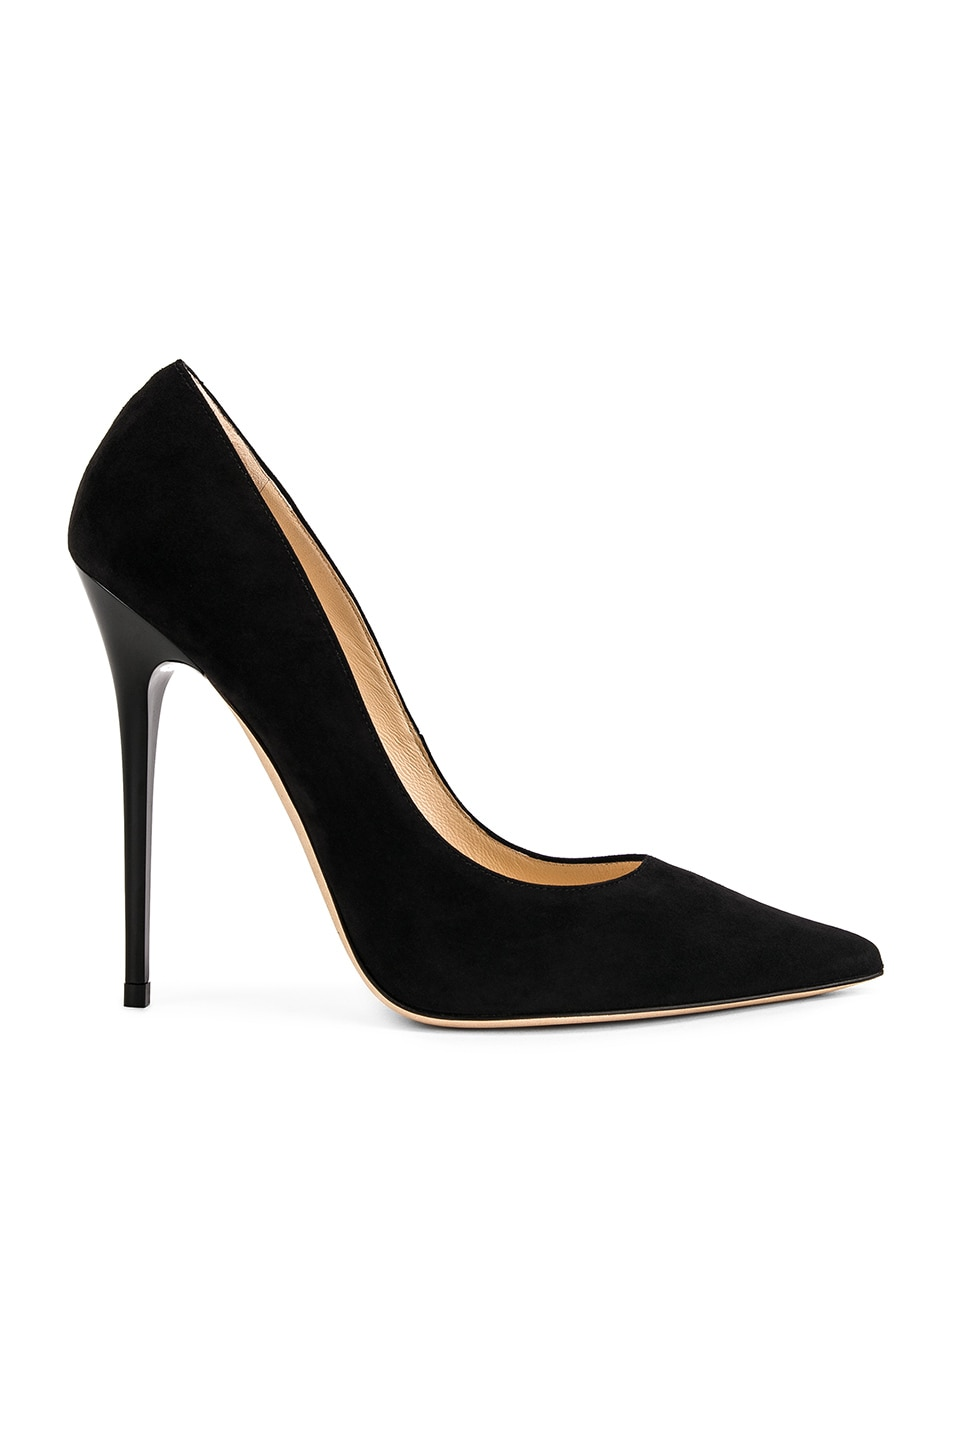 Image 1 of Jimmy Choo Anouk 120 Suede Pumps in Black